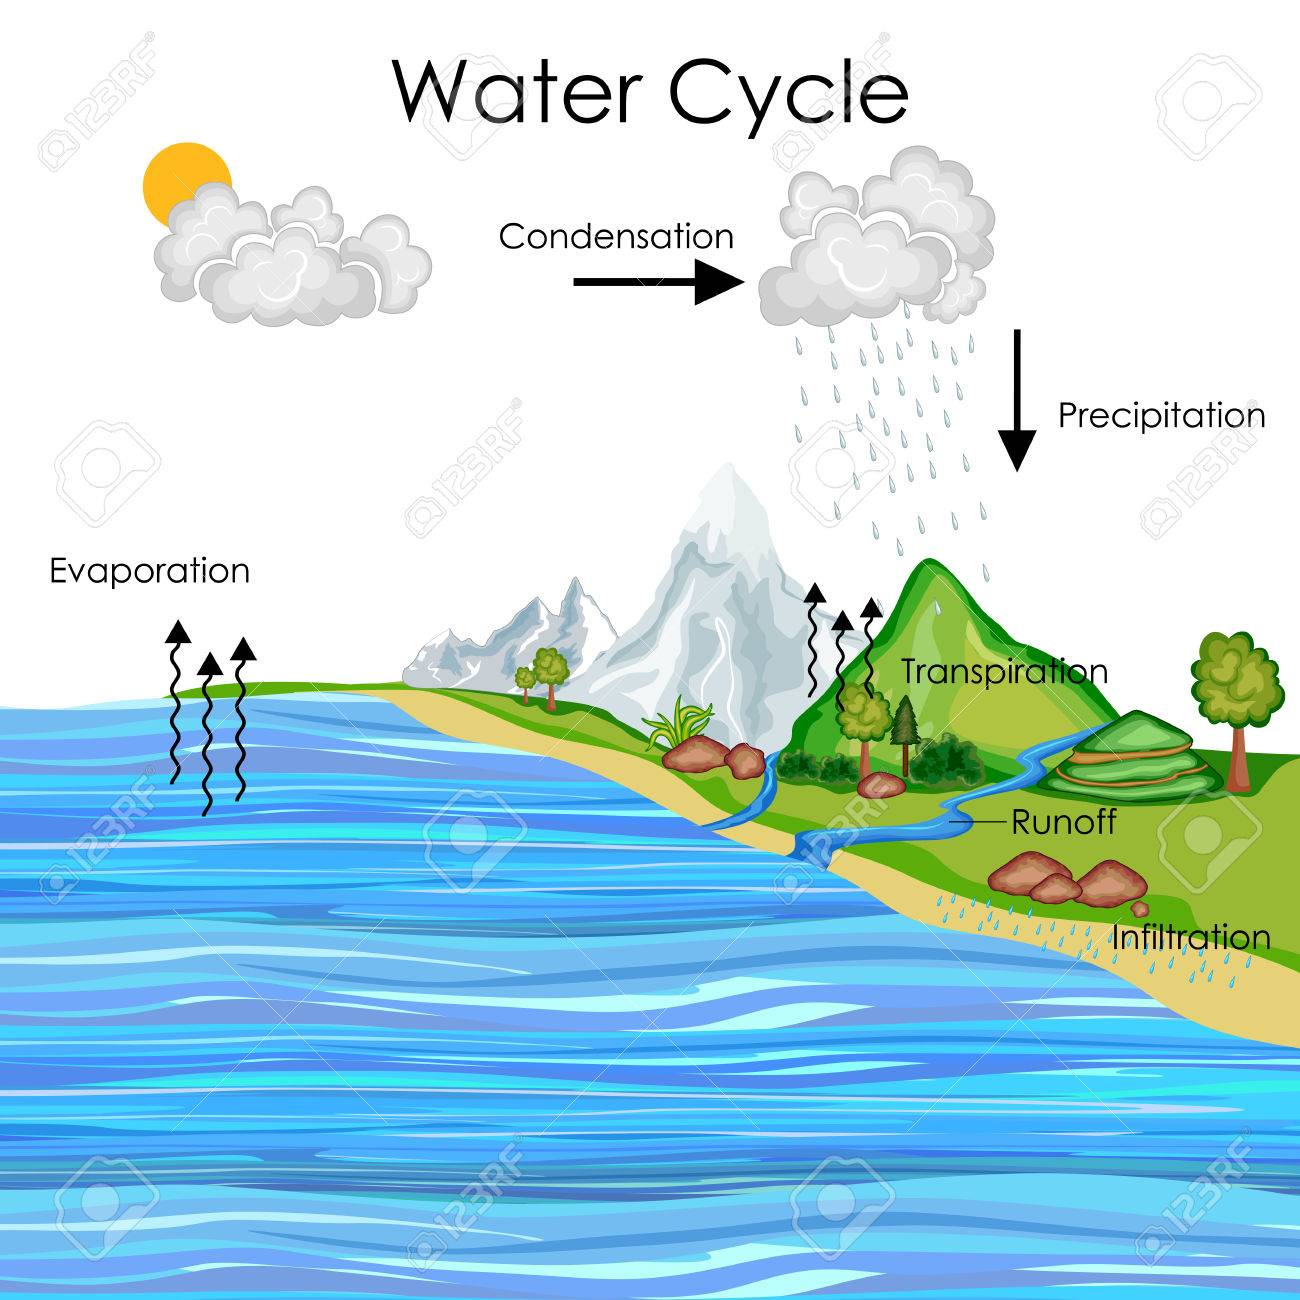 education chart of water cycle diagram stock photo, picture and Peacock Cycle Diagram education chart of water cycle diagram stock photo 80713896